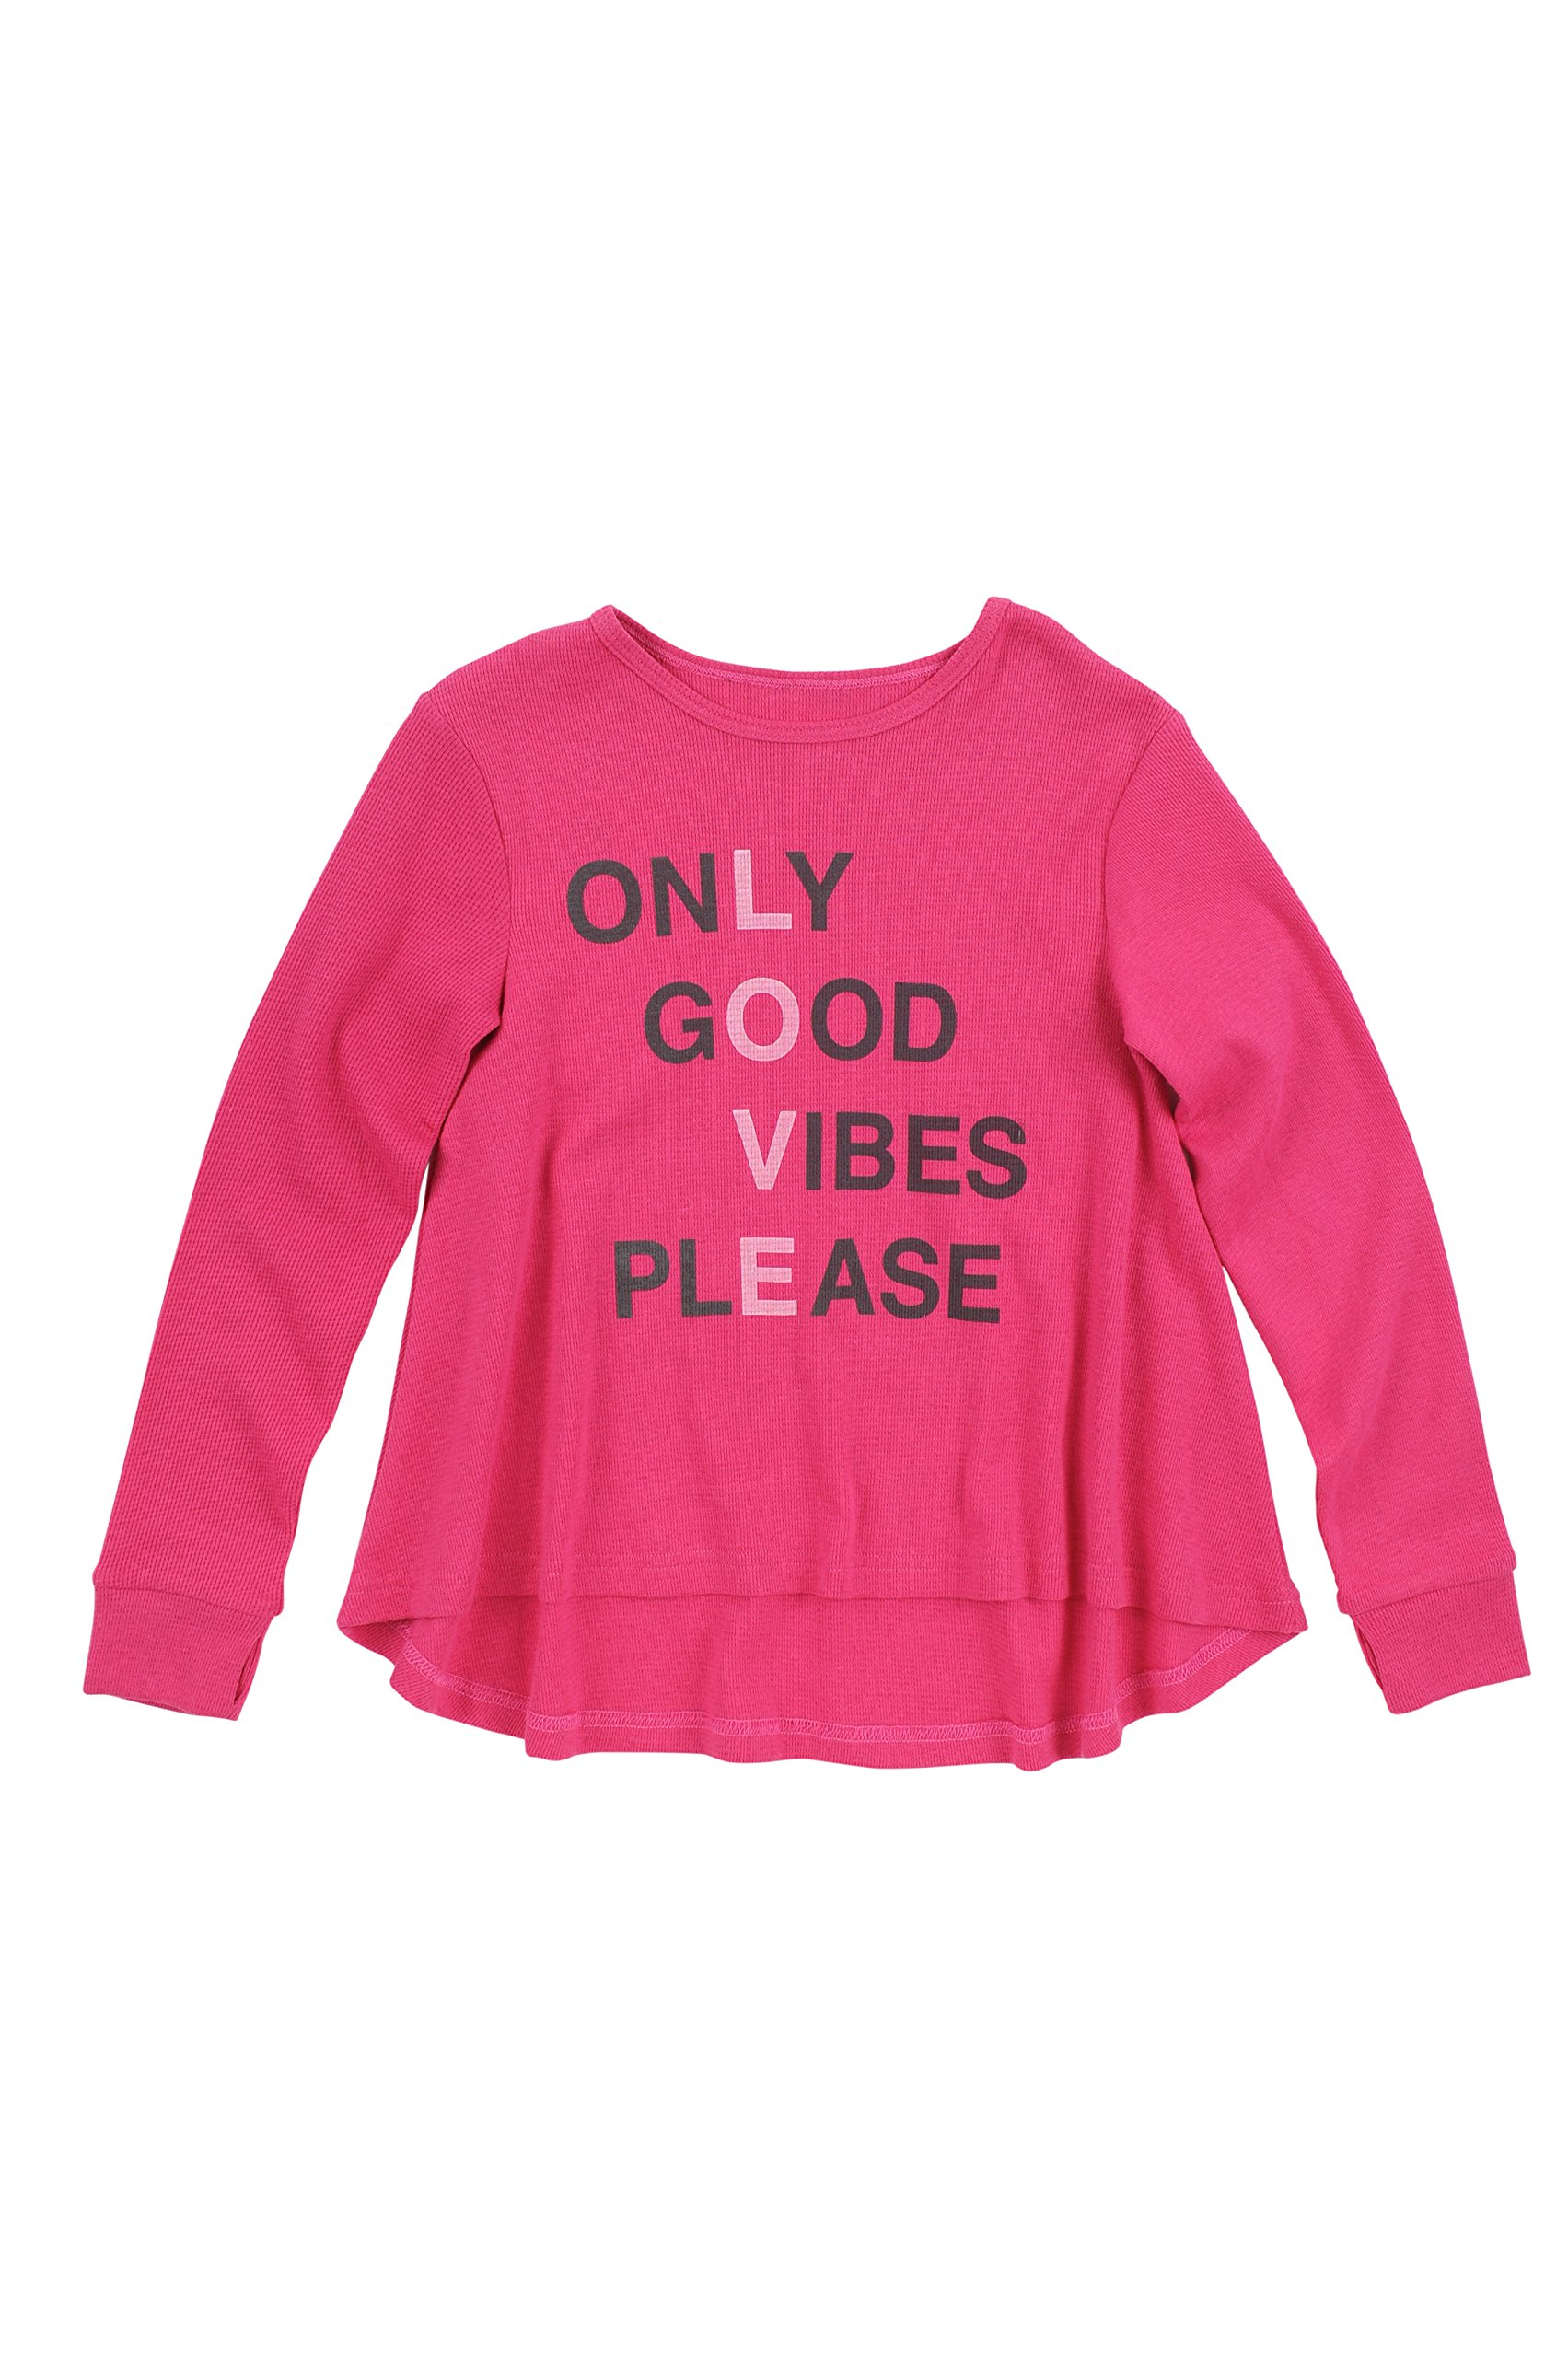 BUTTER SUPER SOFT Girl's Long Sleeve Good Vibes Crewneck High Low Thermal T-Shirt Beetroot Purple 5 by BUTTER SUPER SOFT